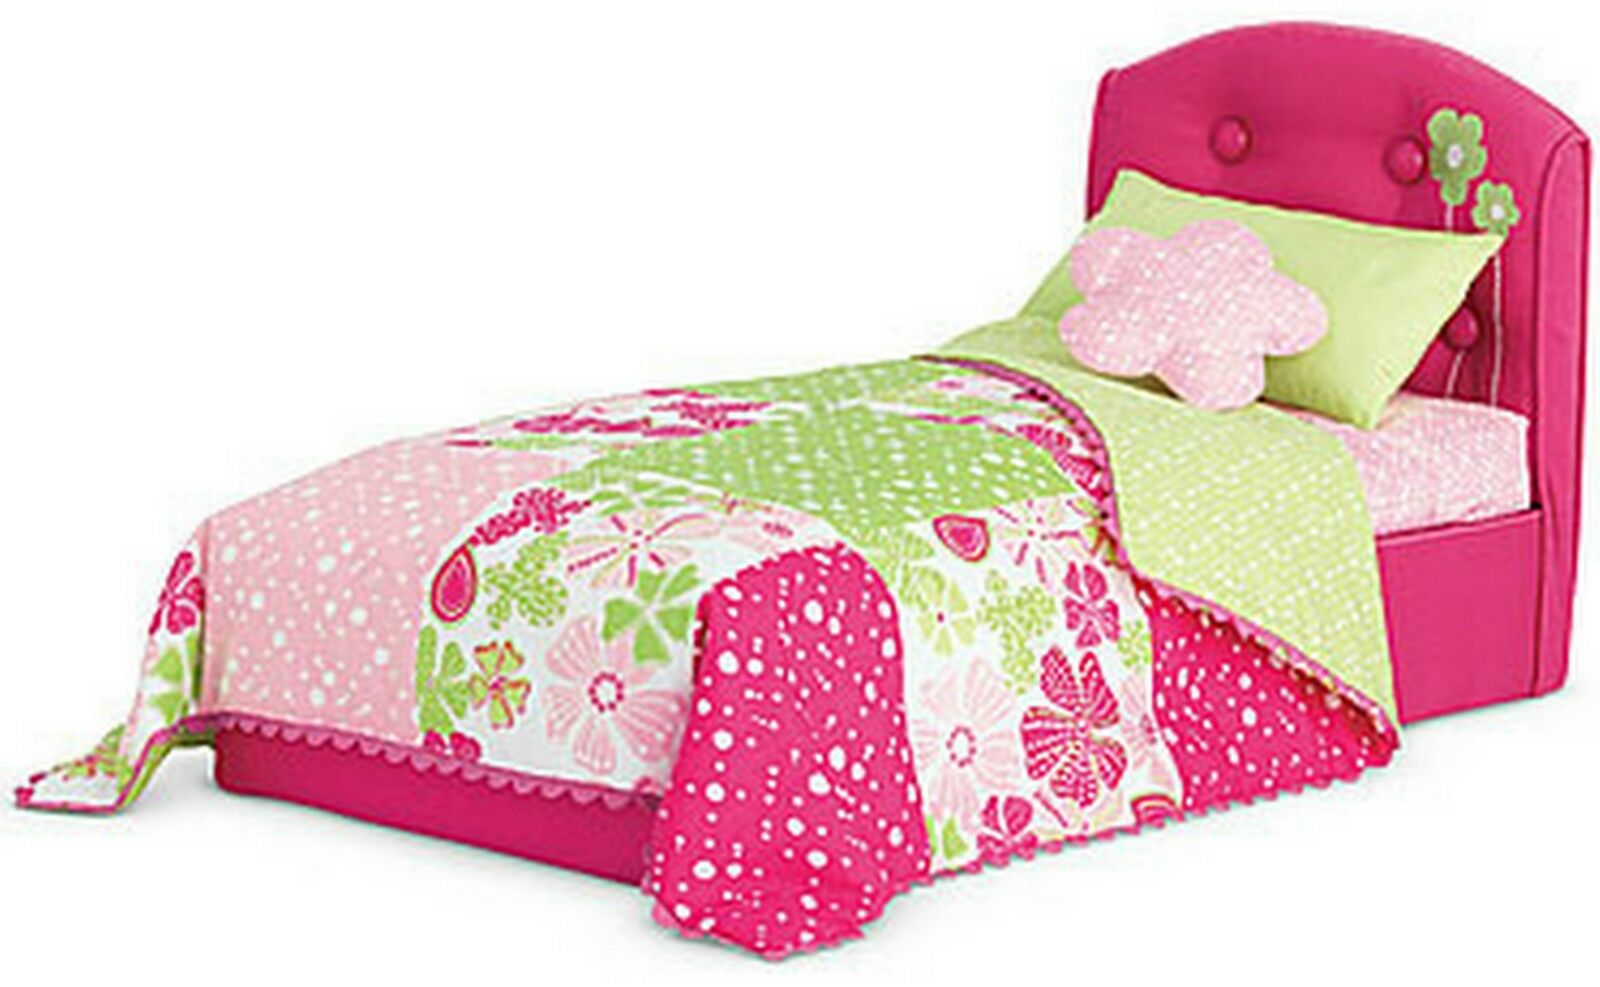 Excellent Gorgeous American Girl Bloom Bed & Bedding Set For Dolls Original Box